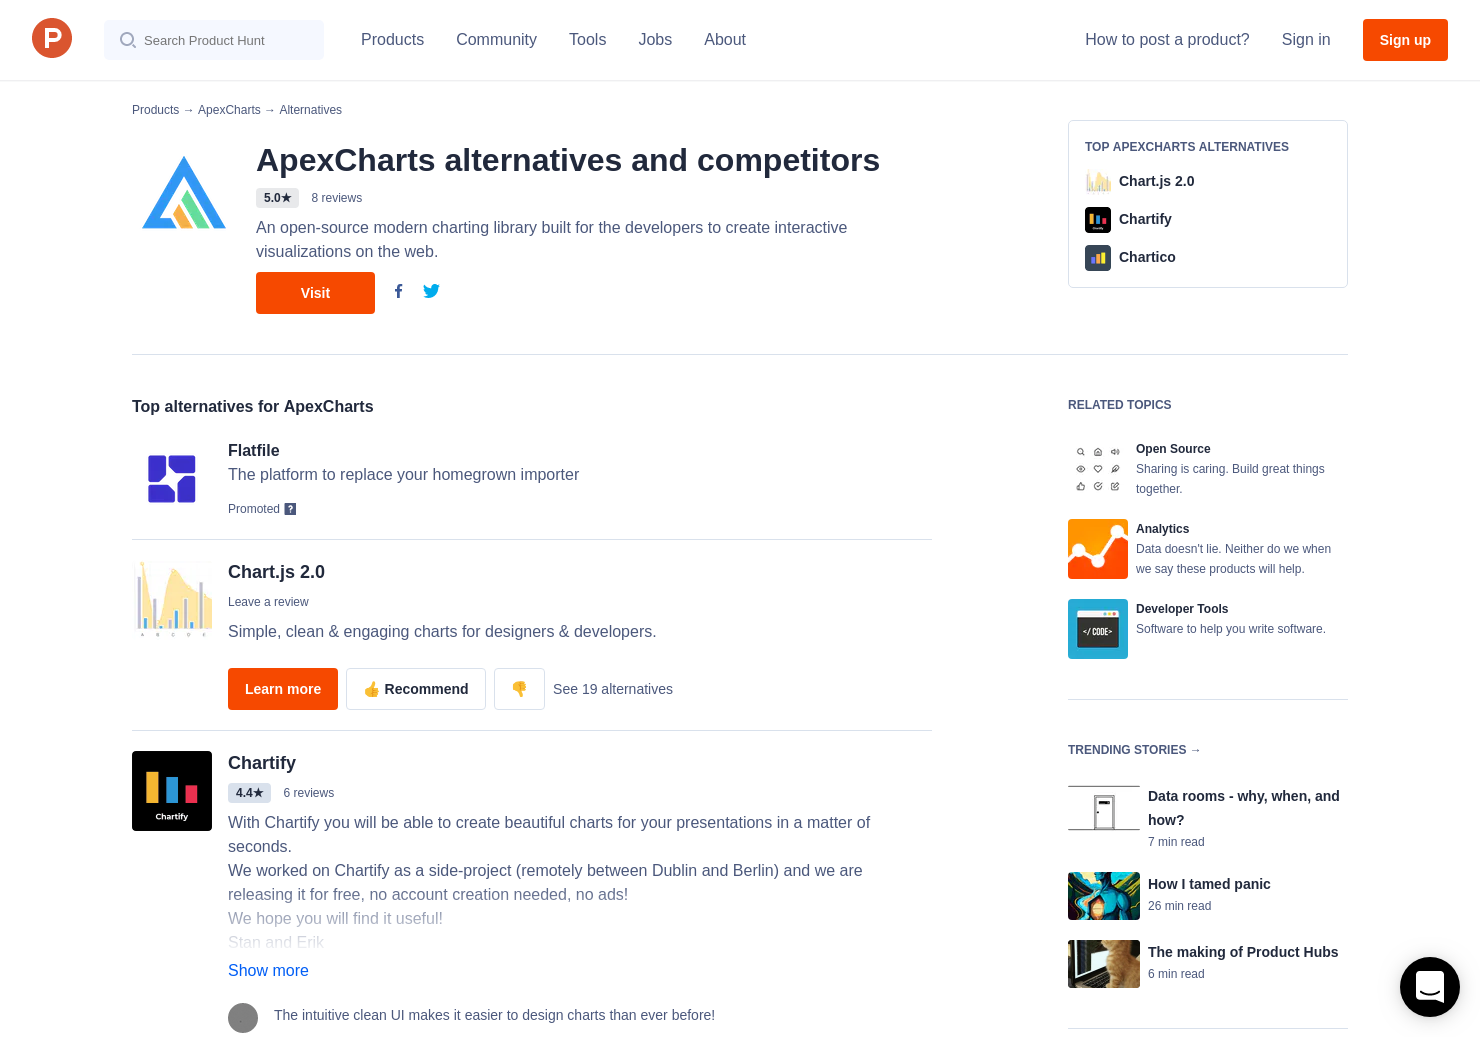 14 Alternatives to ApexCharts | Product Hunt